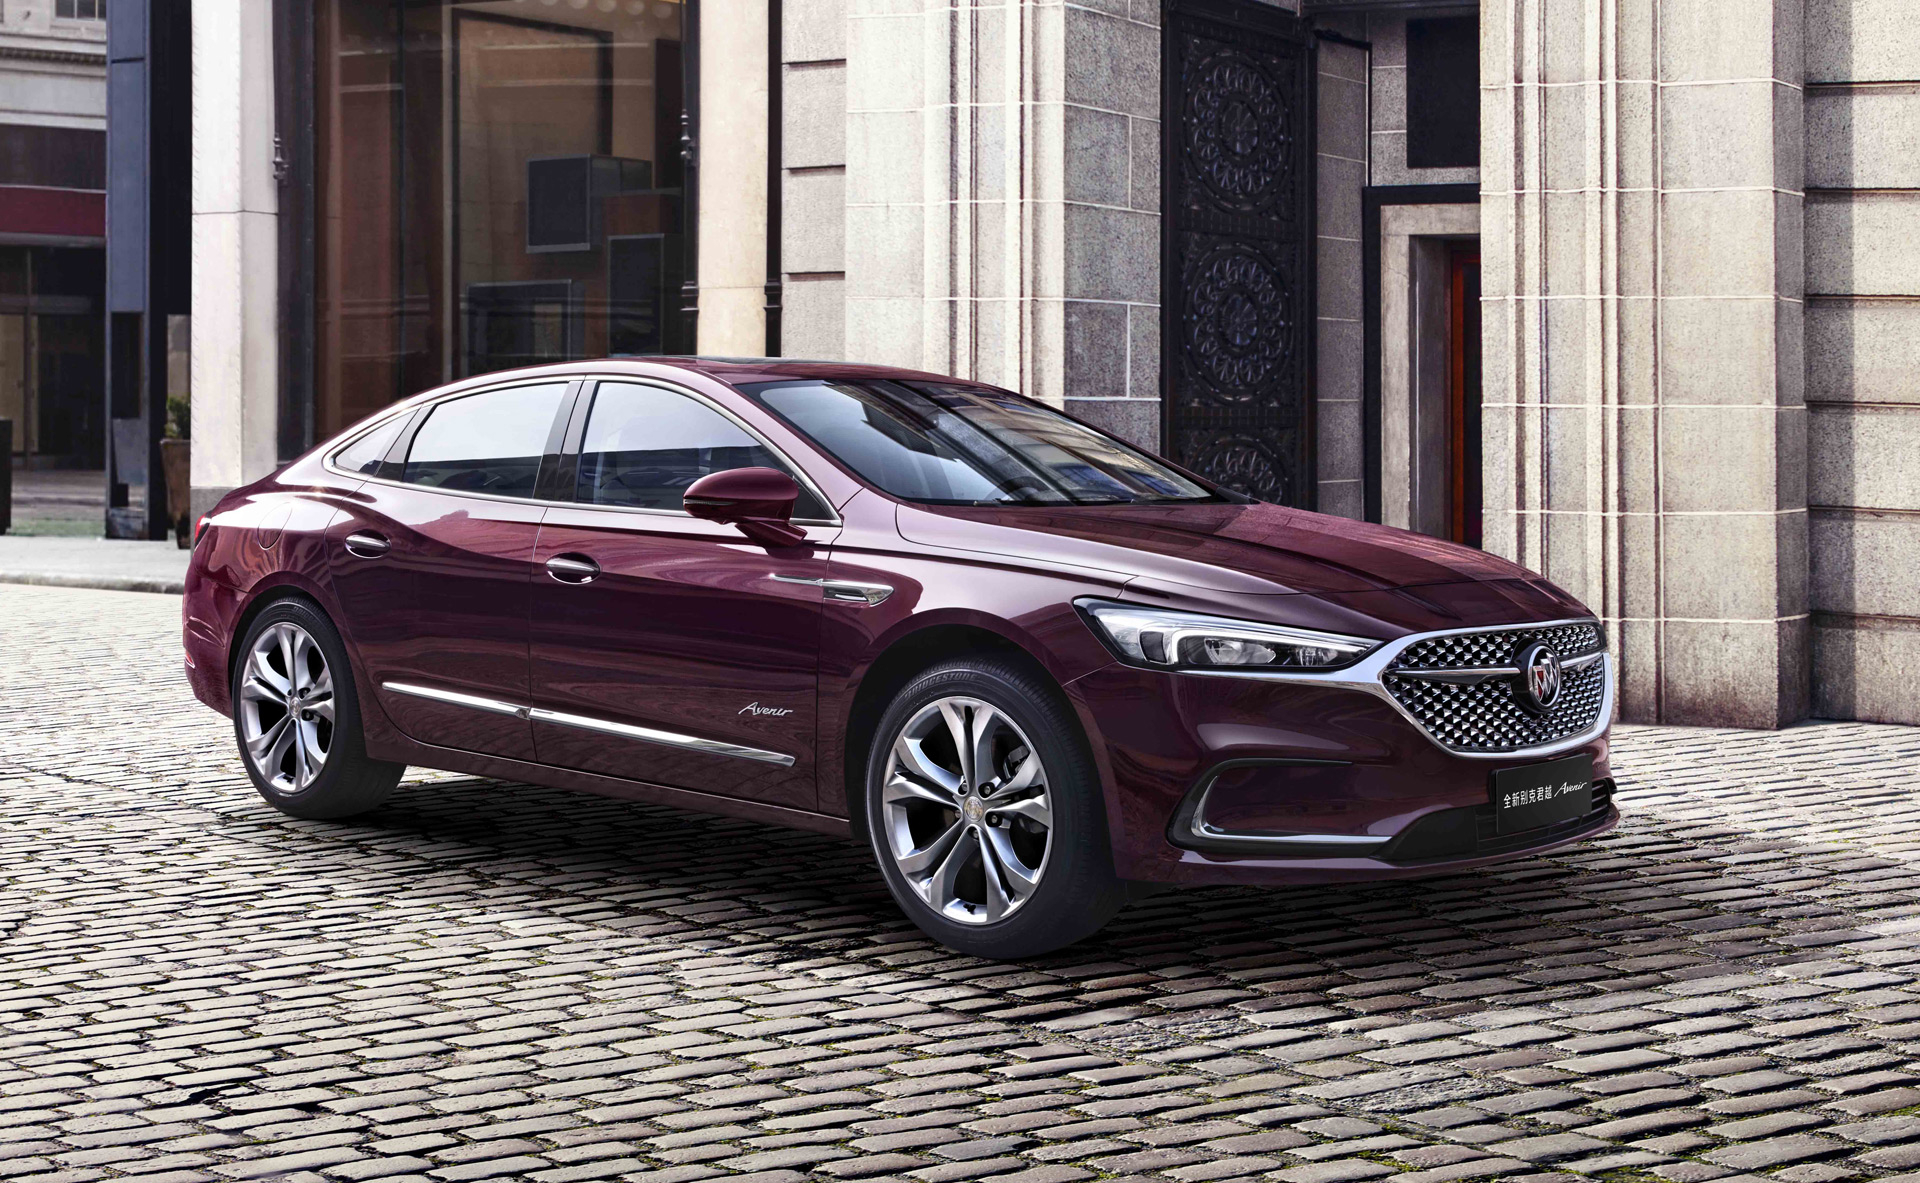 2020 Buick Lacrosse Made Handsome Just As It's Dropped In Us What Will The 2021 Buick Lacrosse Look Like